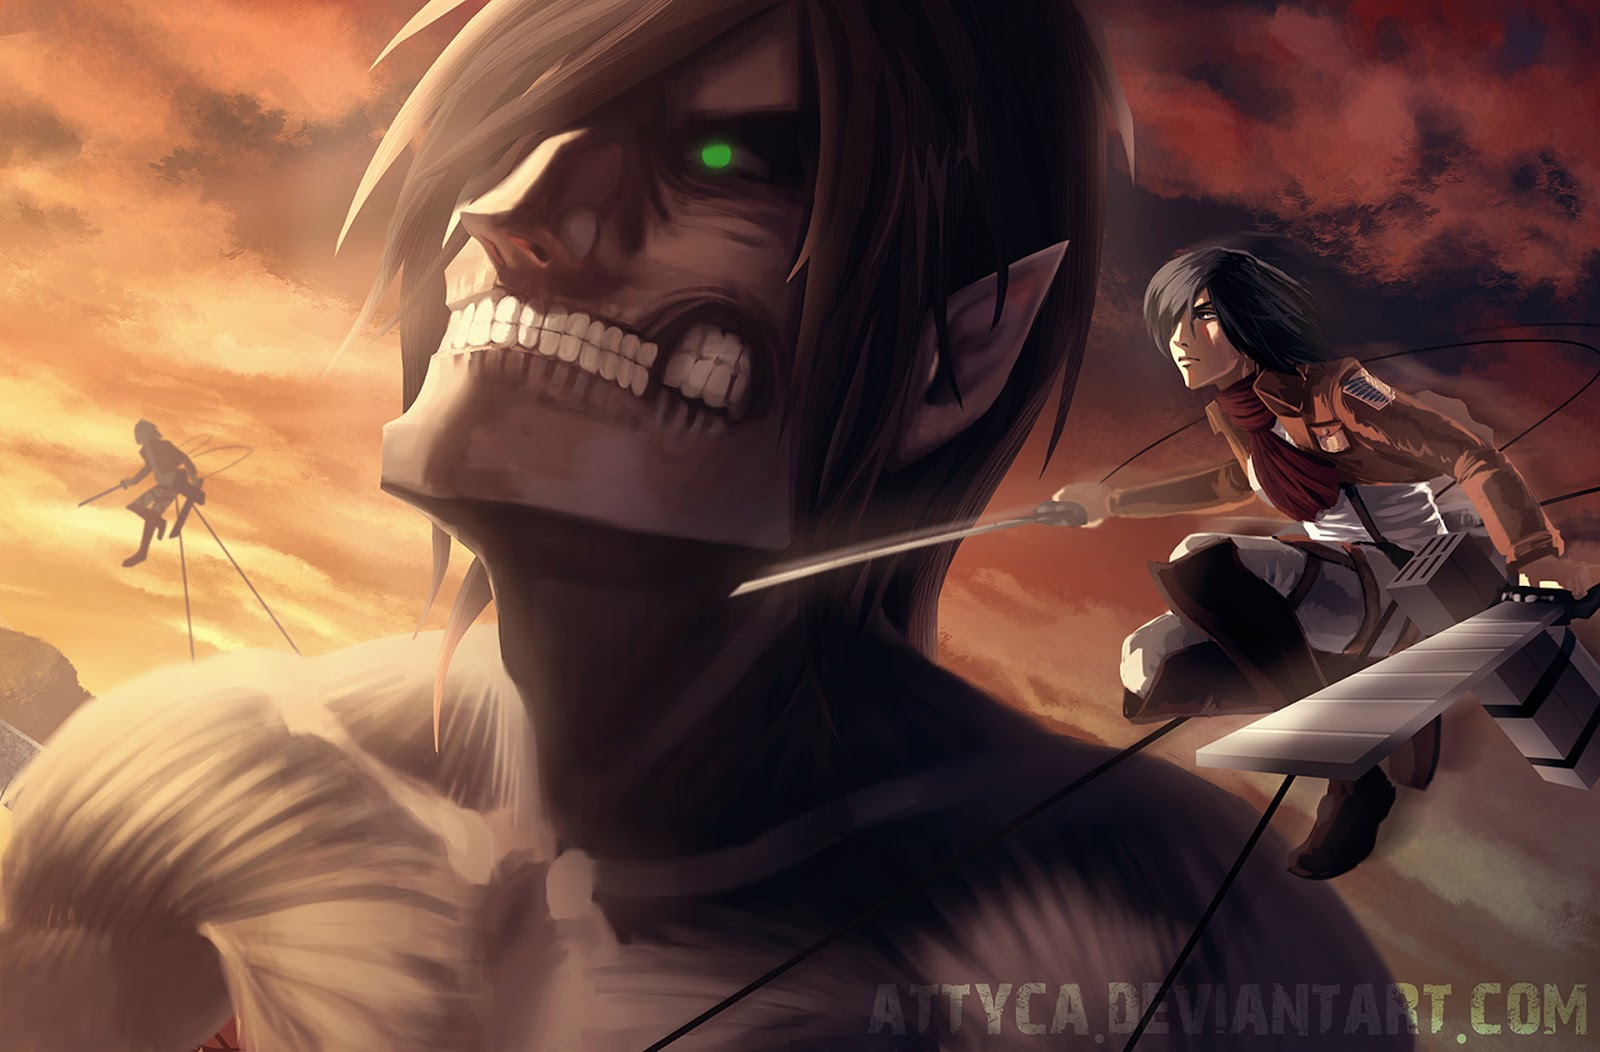 Eren Jaeger Titan Form Mikasa Ackerman Attack On Titan Mikasa And Eren Titan 1600x1052 Wallpaper Teahub Io